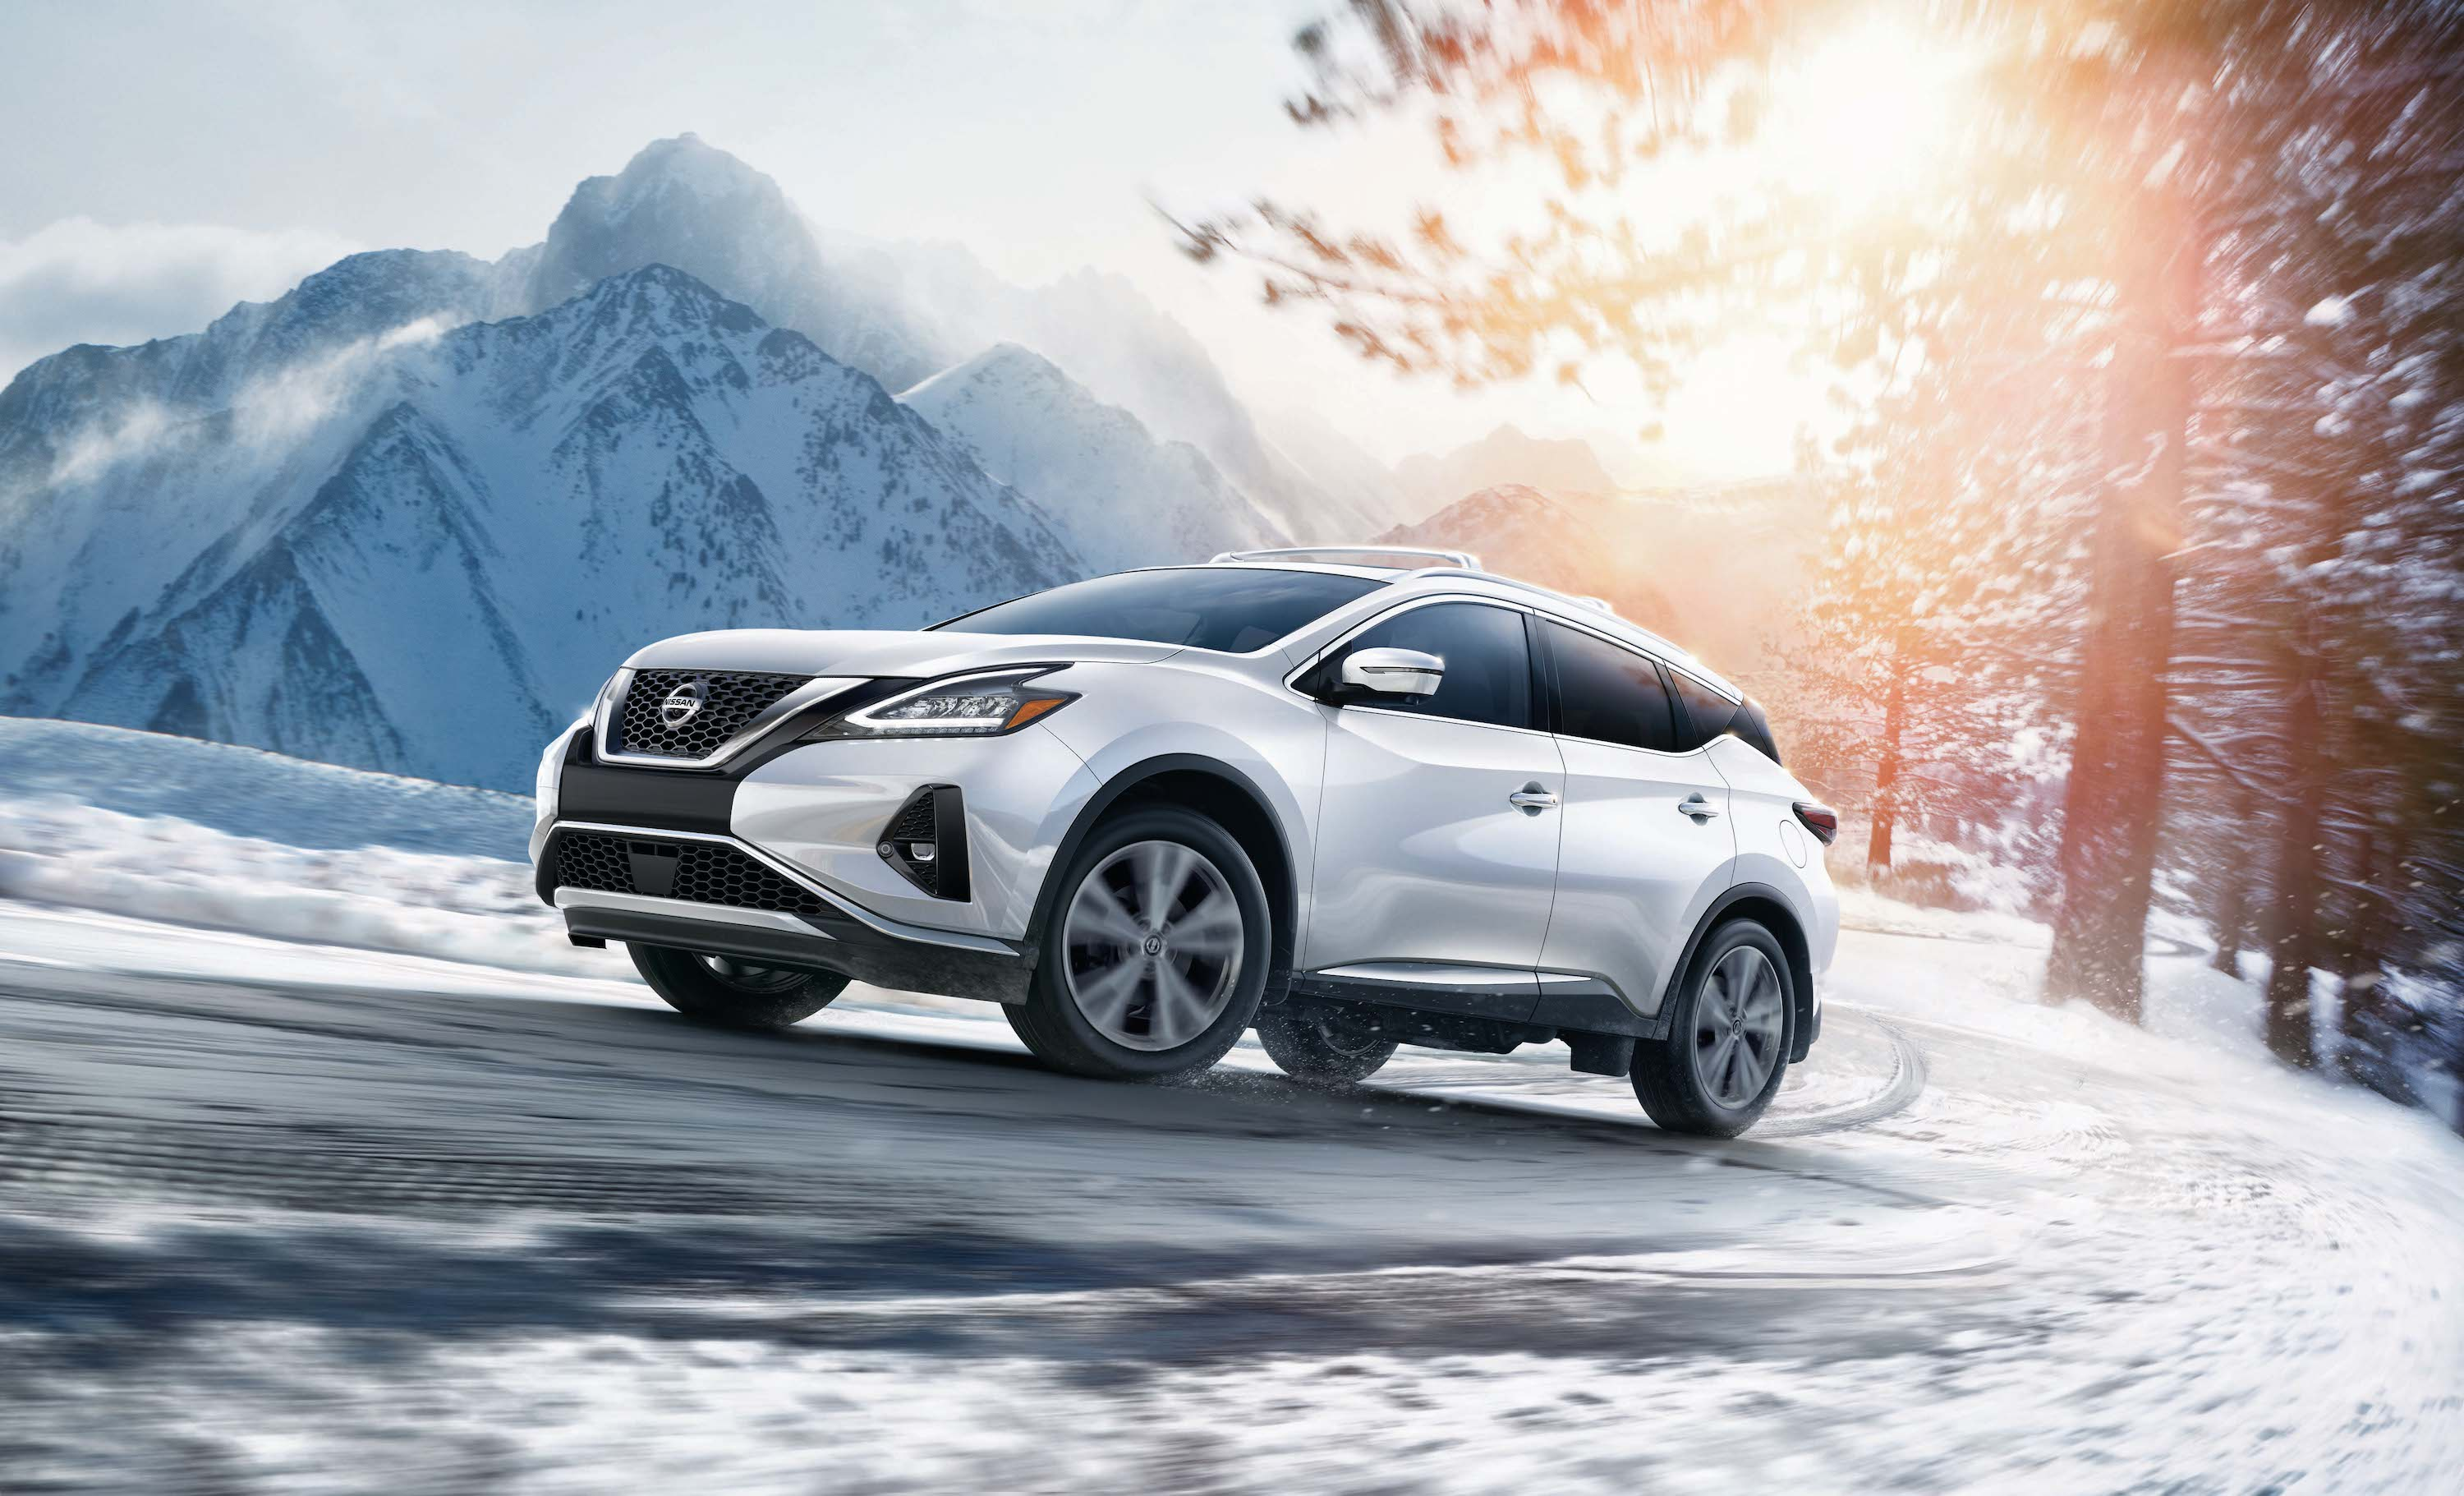 Model Features of the 2019 Nissan Murano at Hanover Nissan | 2019 murano running on snowy road